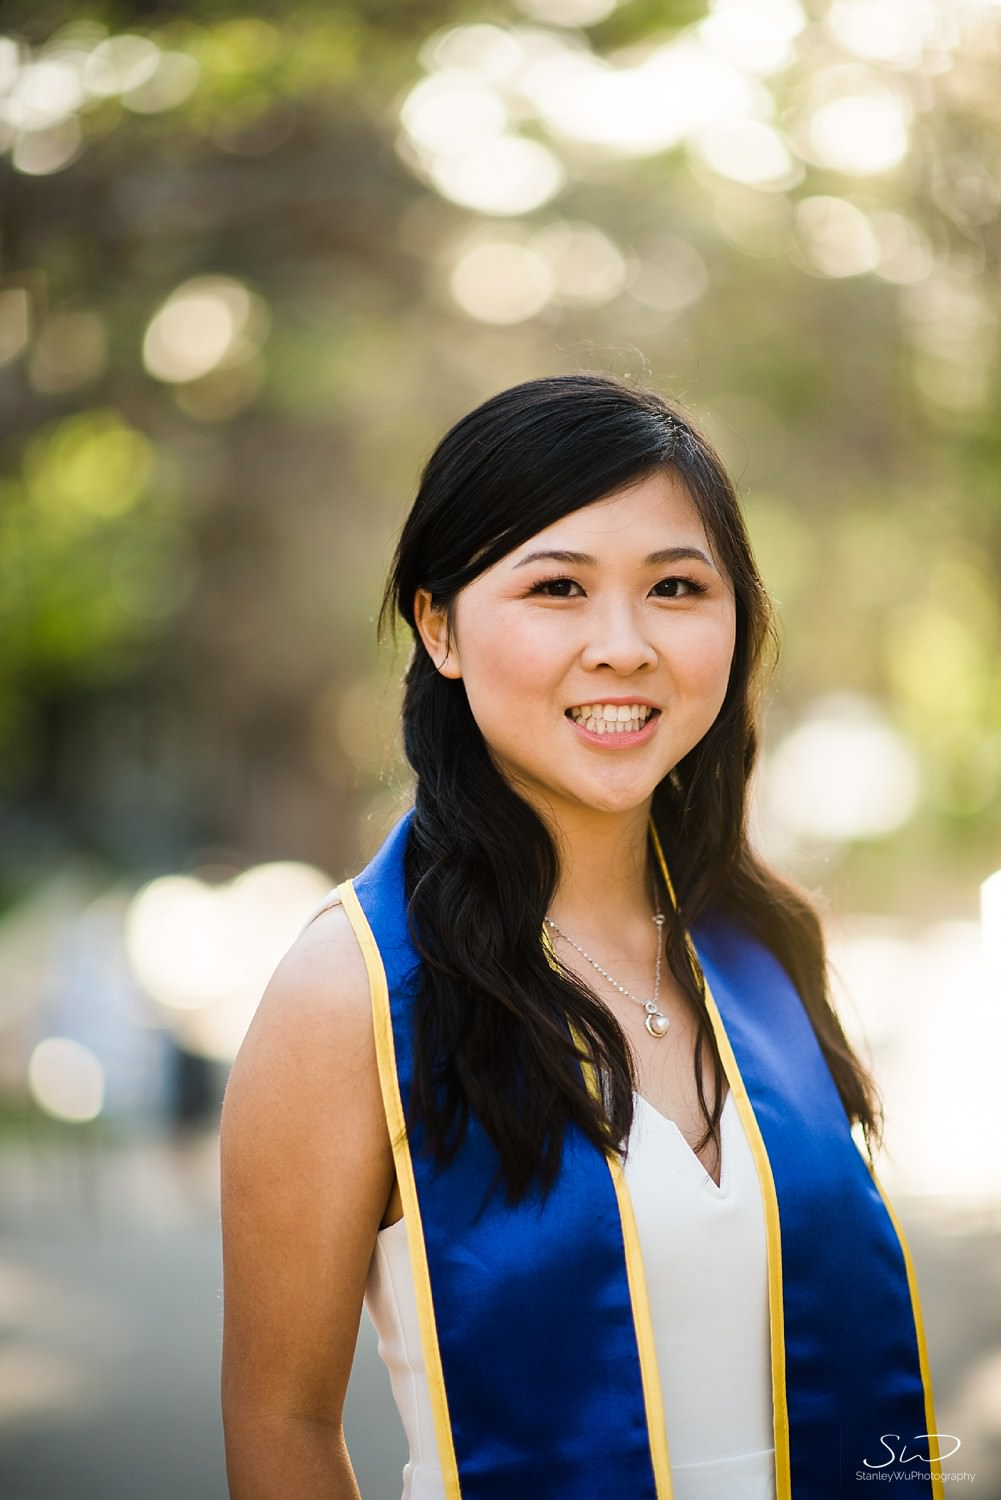 ucla-graduation-portraits_0003.jpg